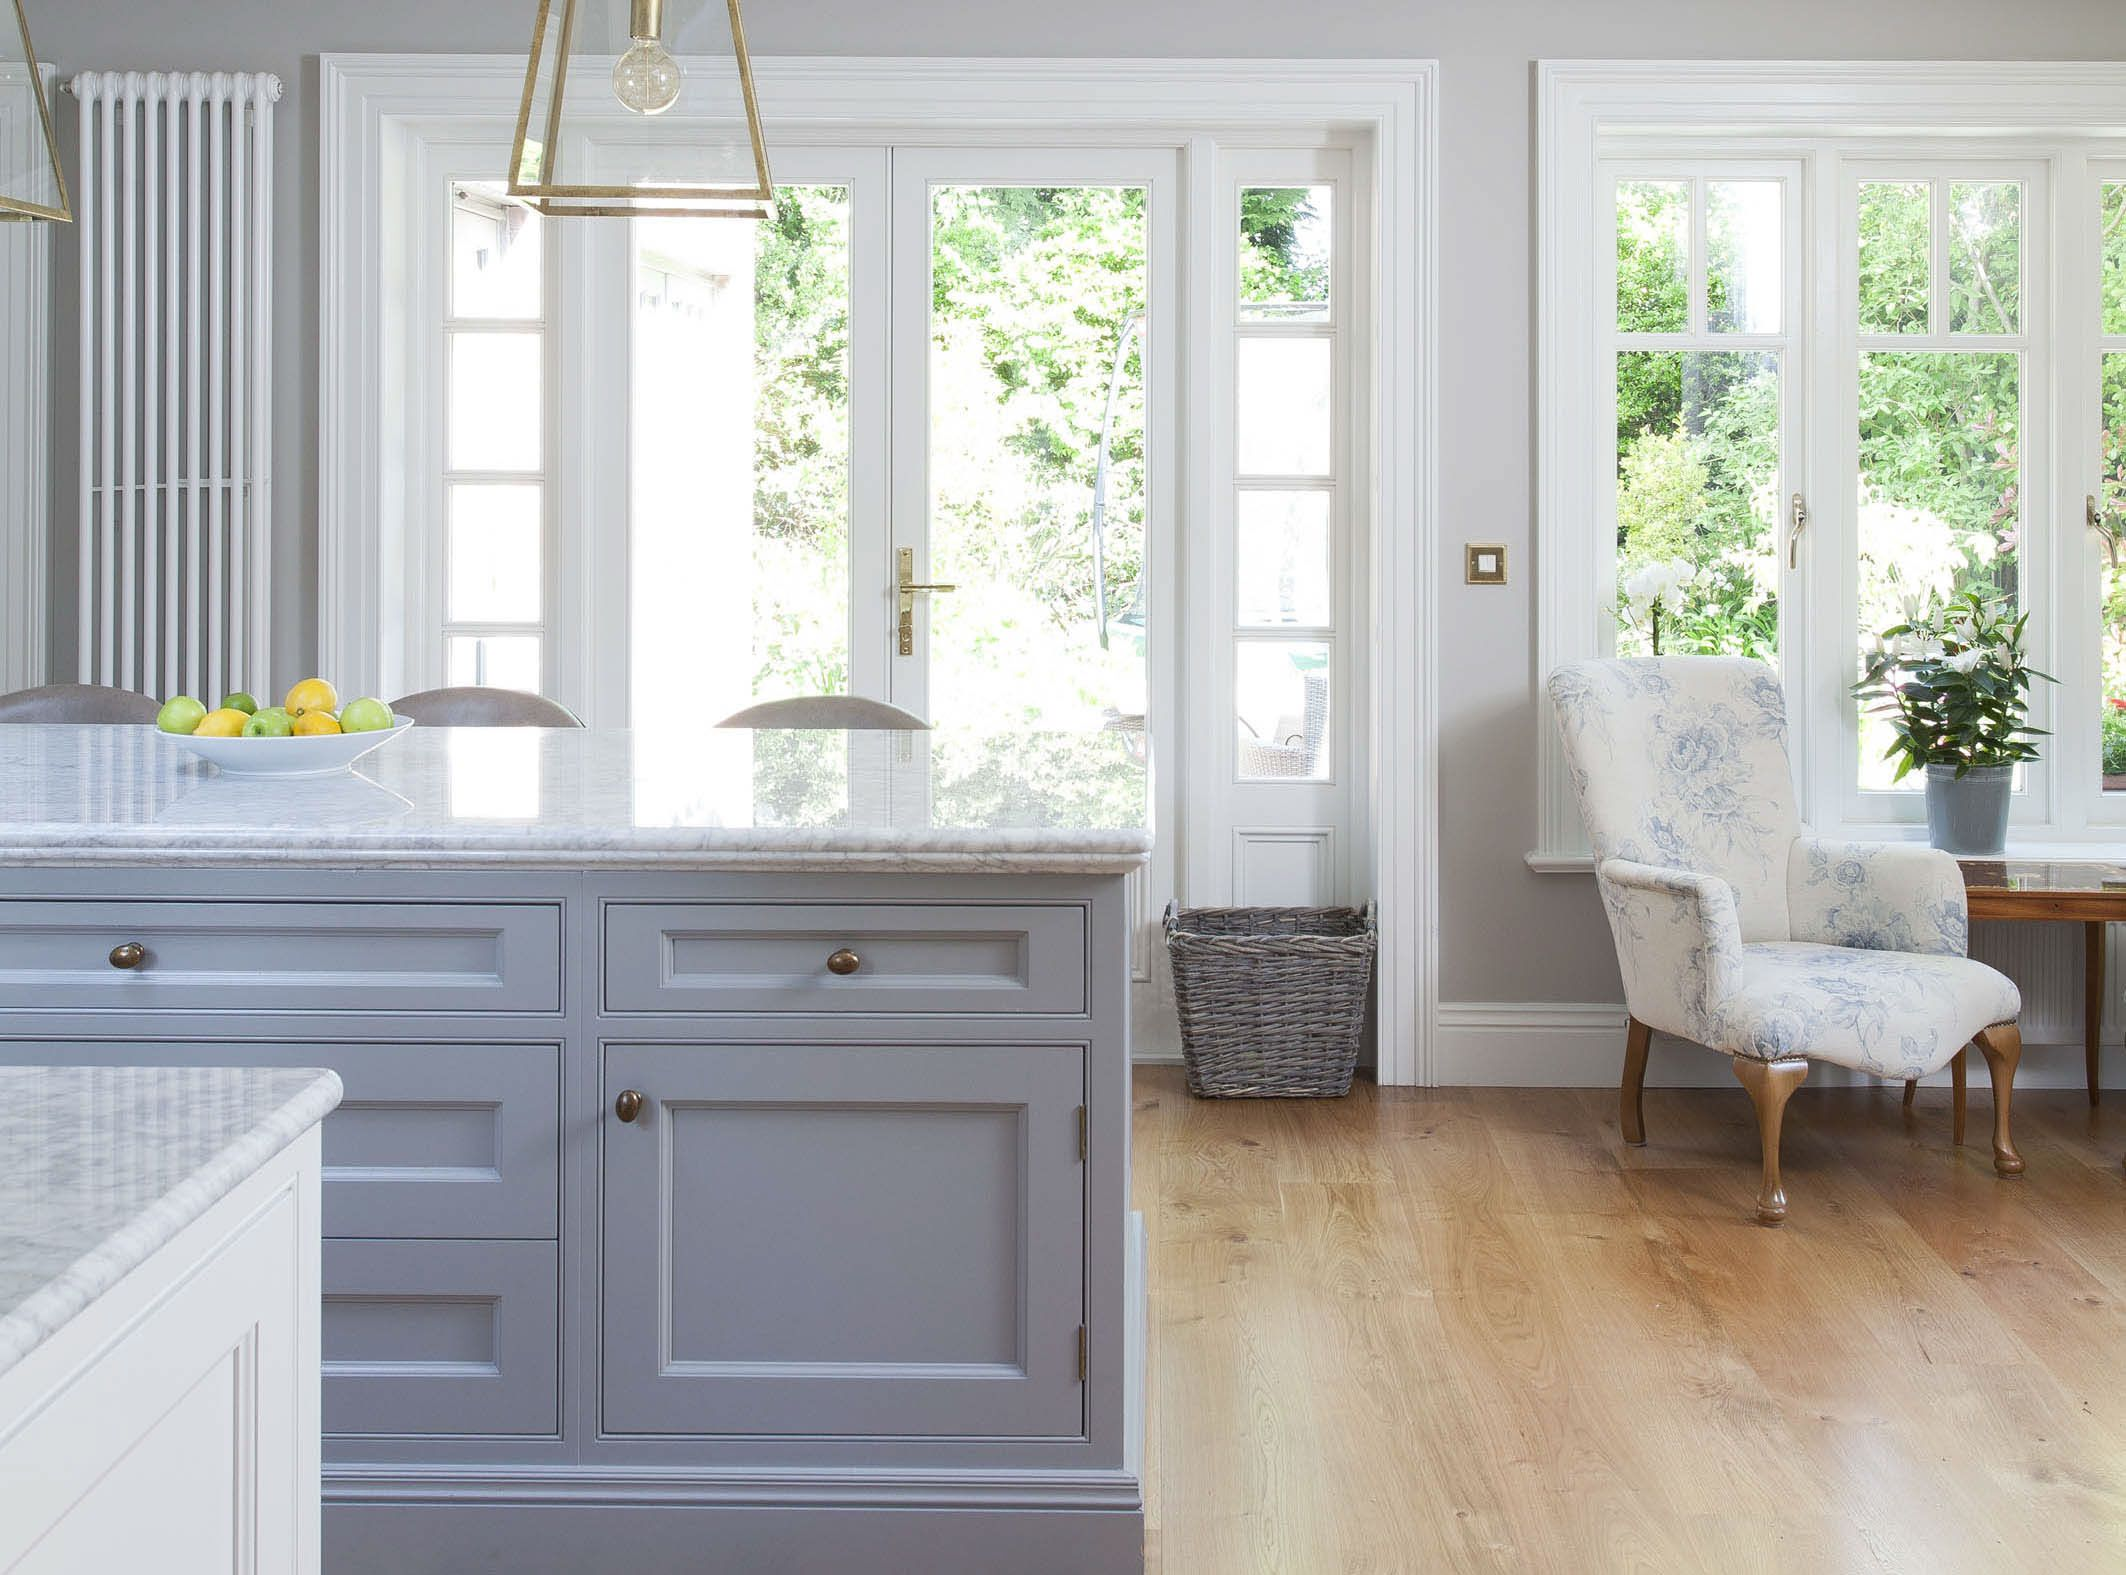 Handcrafted scheme by Woodale is handpainted in Distressed